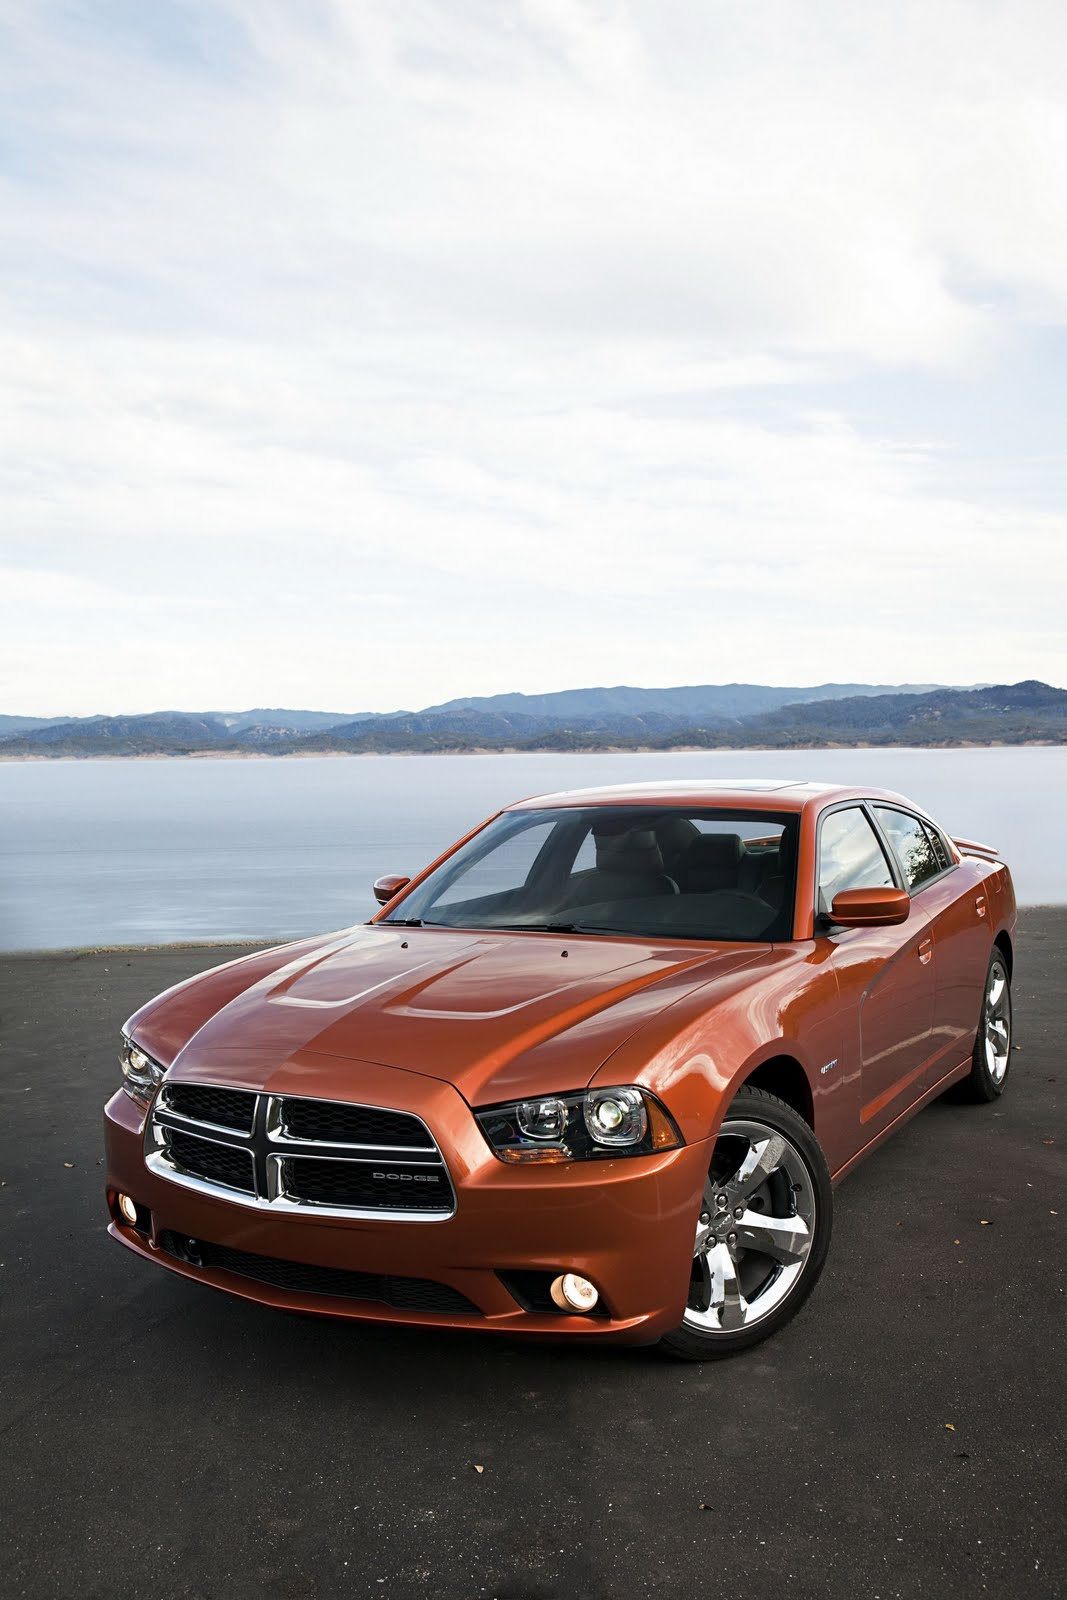 2011 Dodge Charger Prices Announced - autoevolution